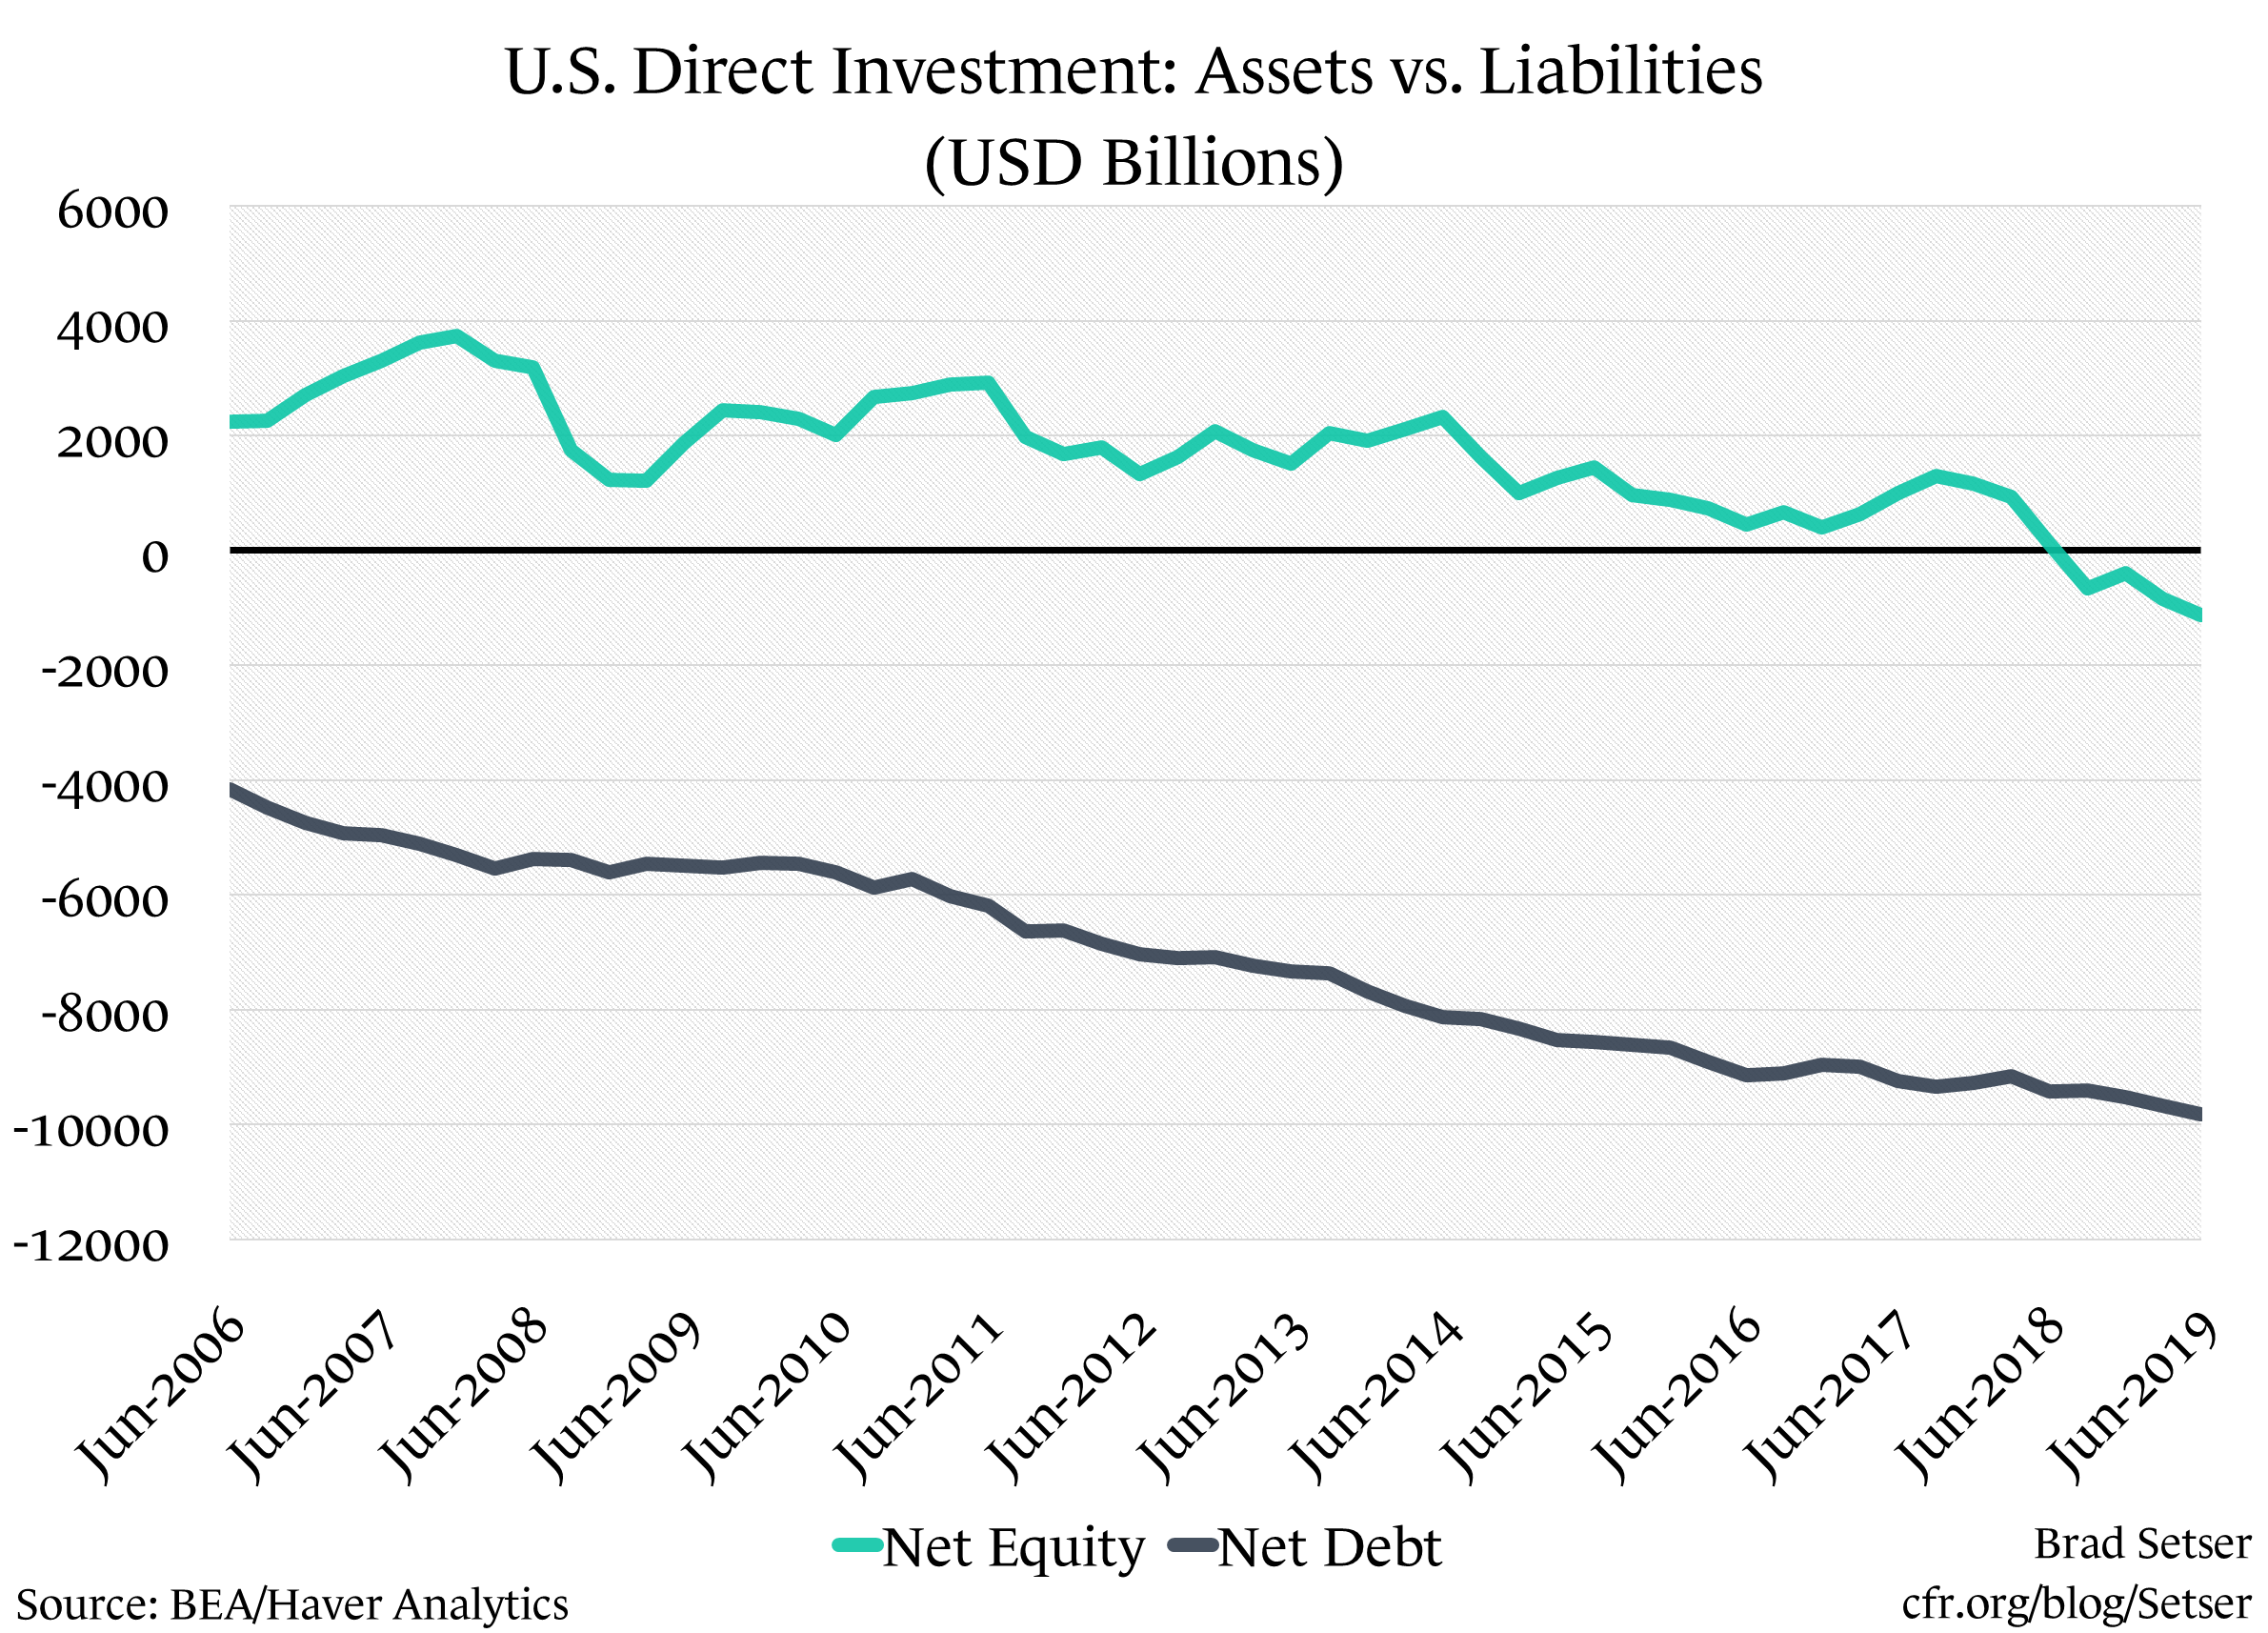 A Big Borrower and a Giant Corporate Tax Dodge? How Best to Describe the U.S. External Balance Sheet